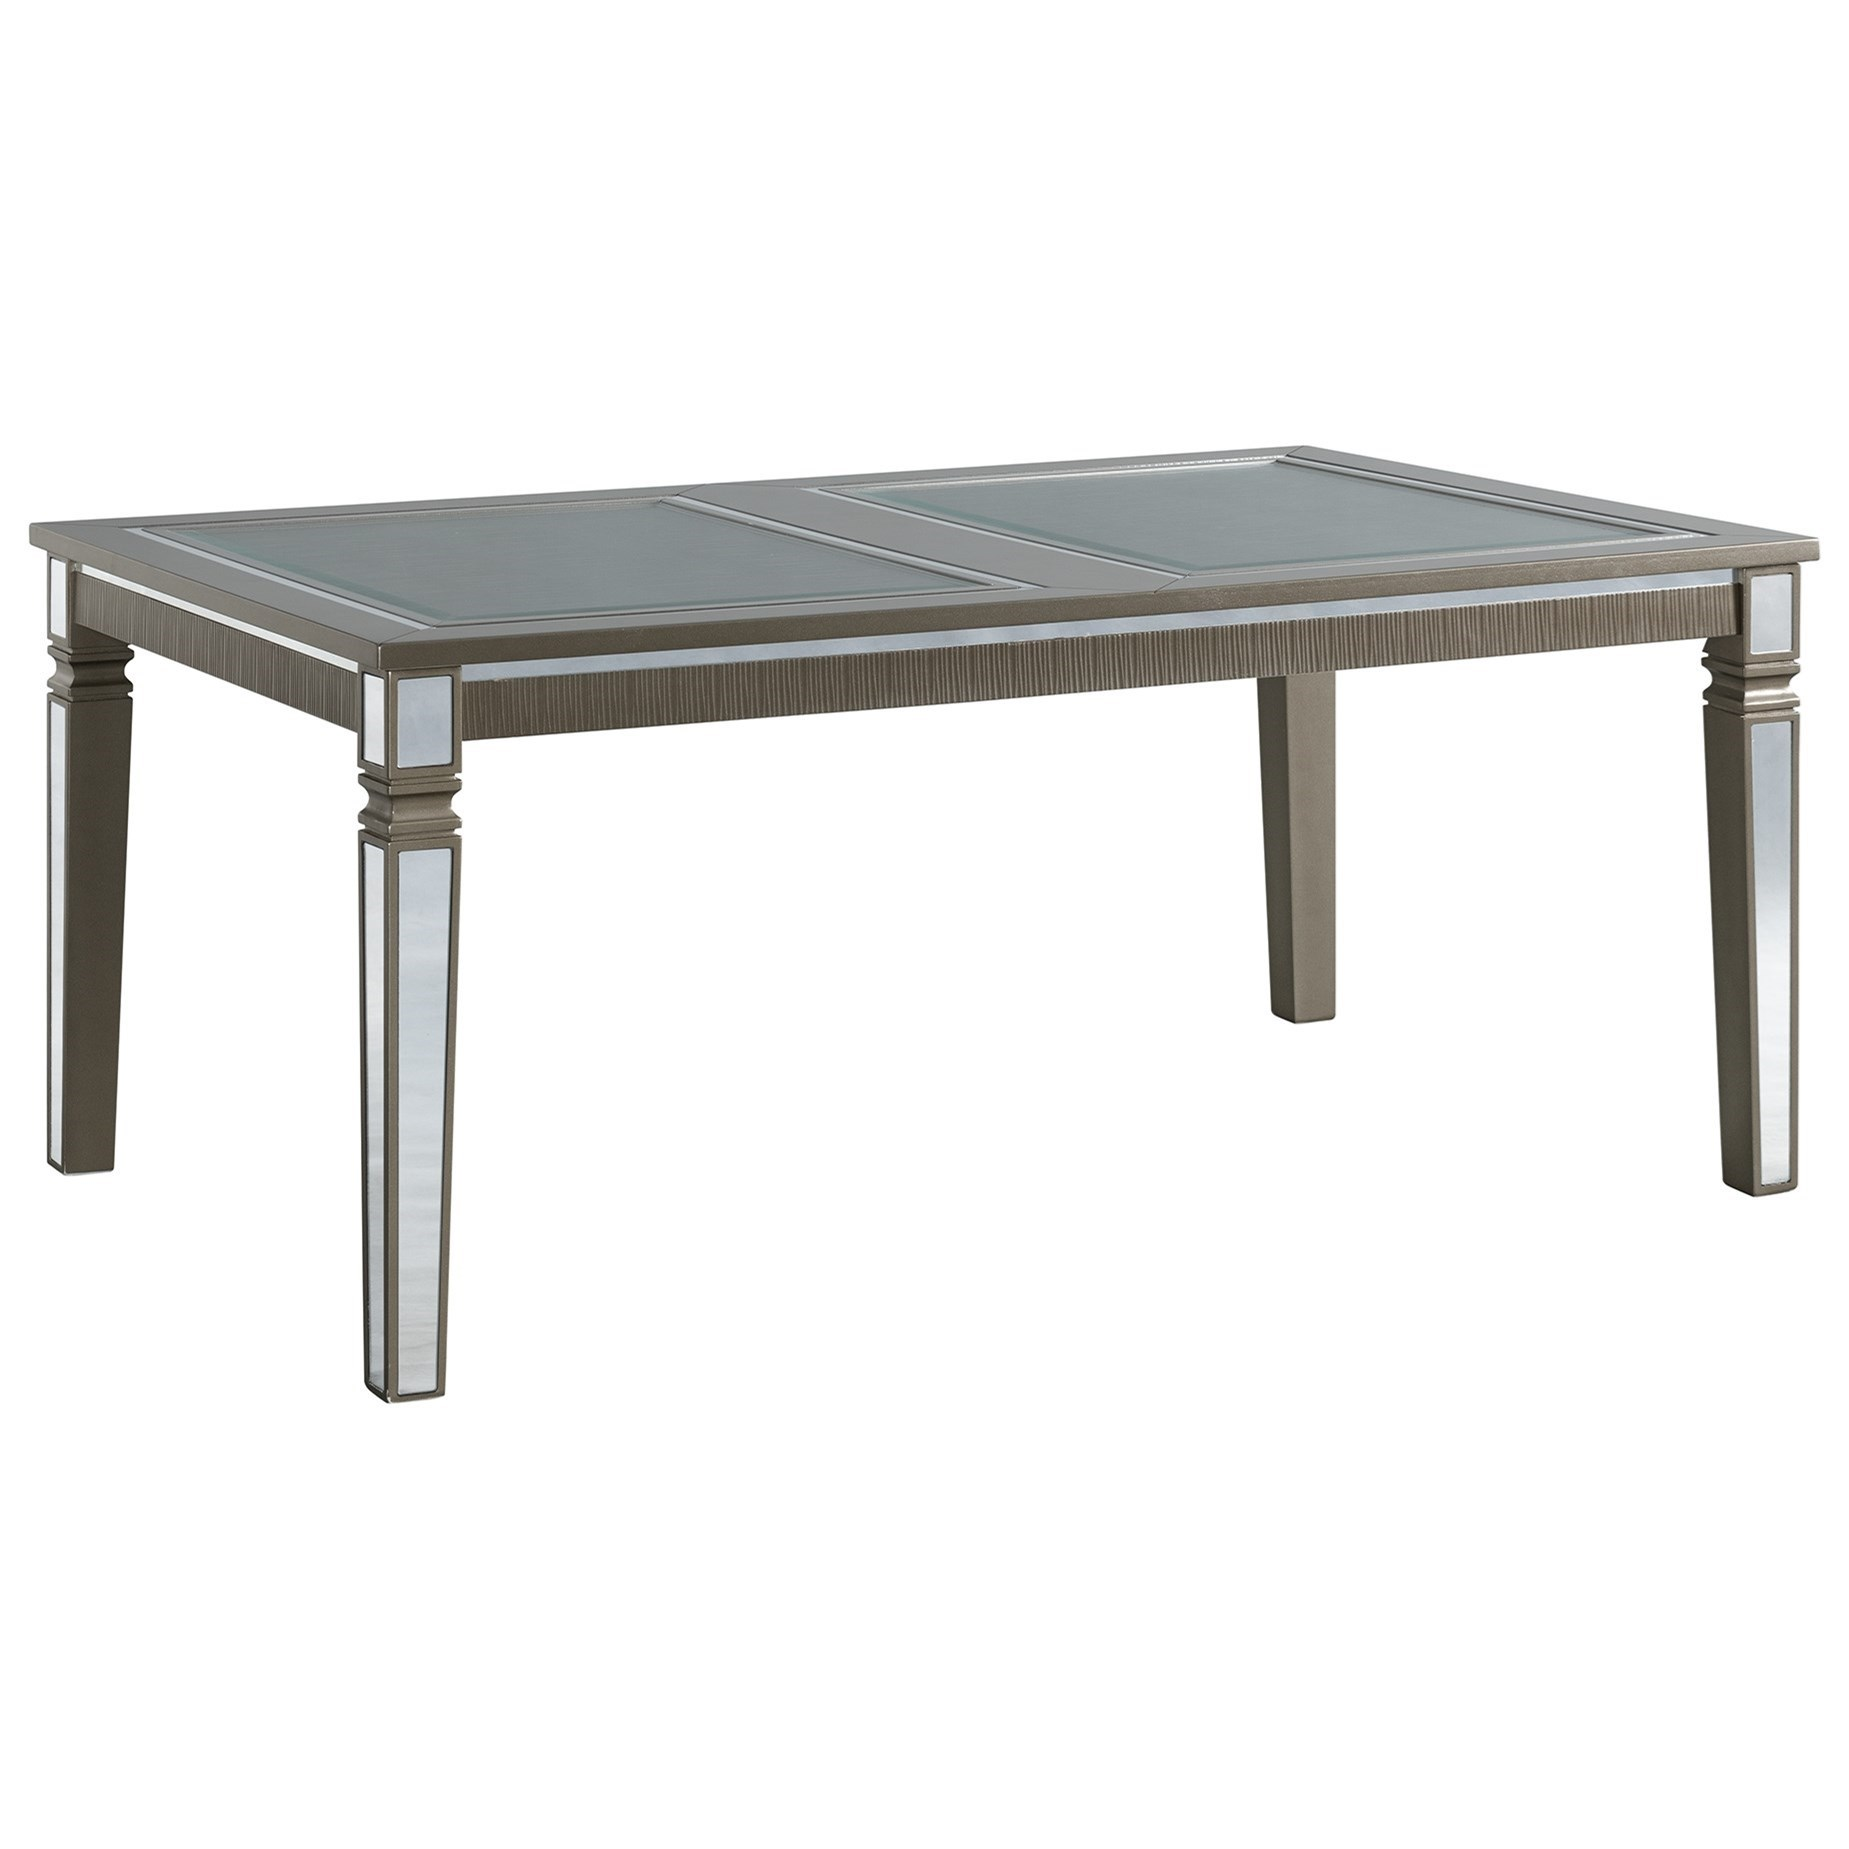 14.5 Standard Height Rectangle Dining Table by Elements International at Story & Lee Furniture